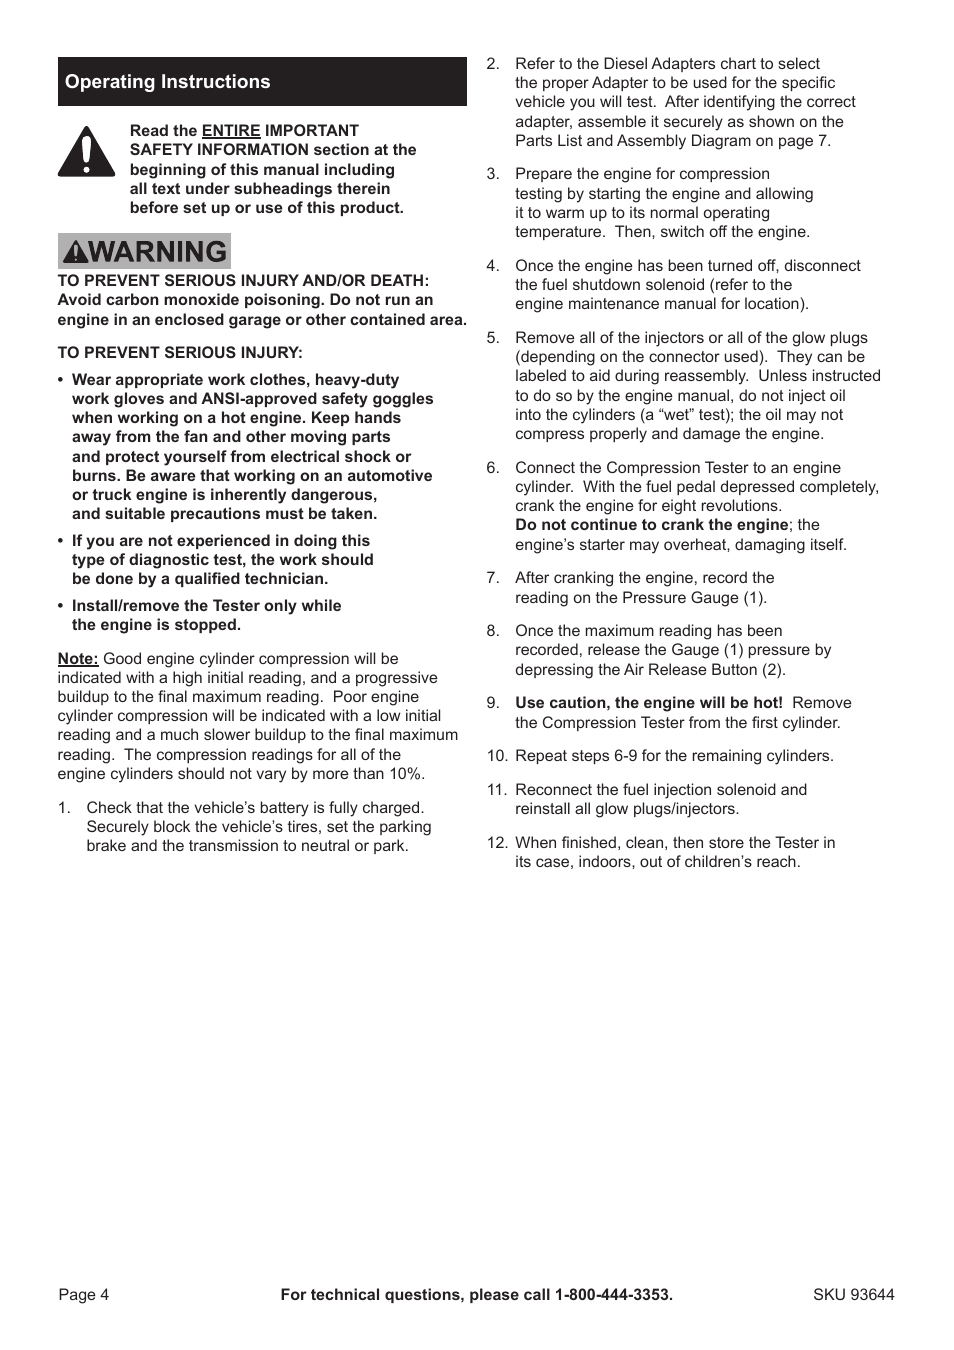 medium resolution of ppg pittsburgh paints pittsburgh diesel engine compression tester 93644 user manual page 4 8